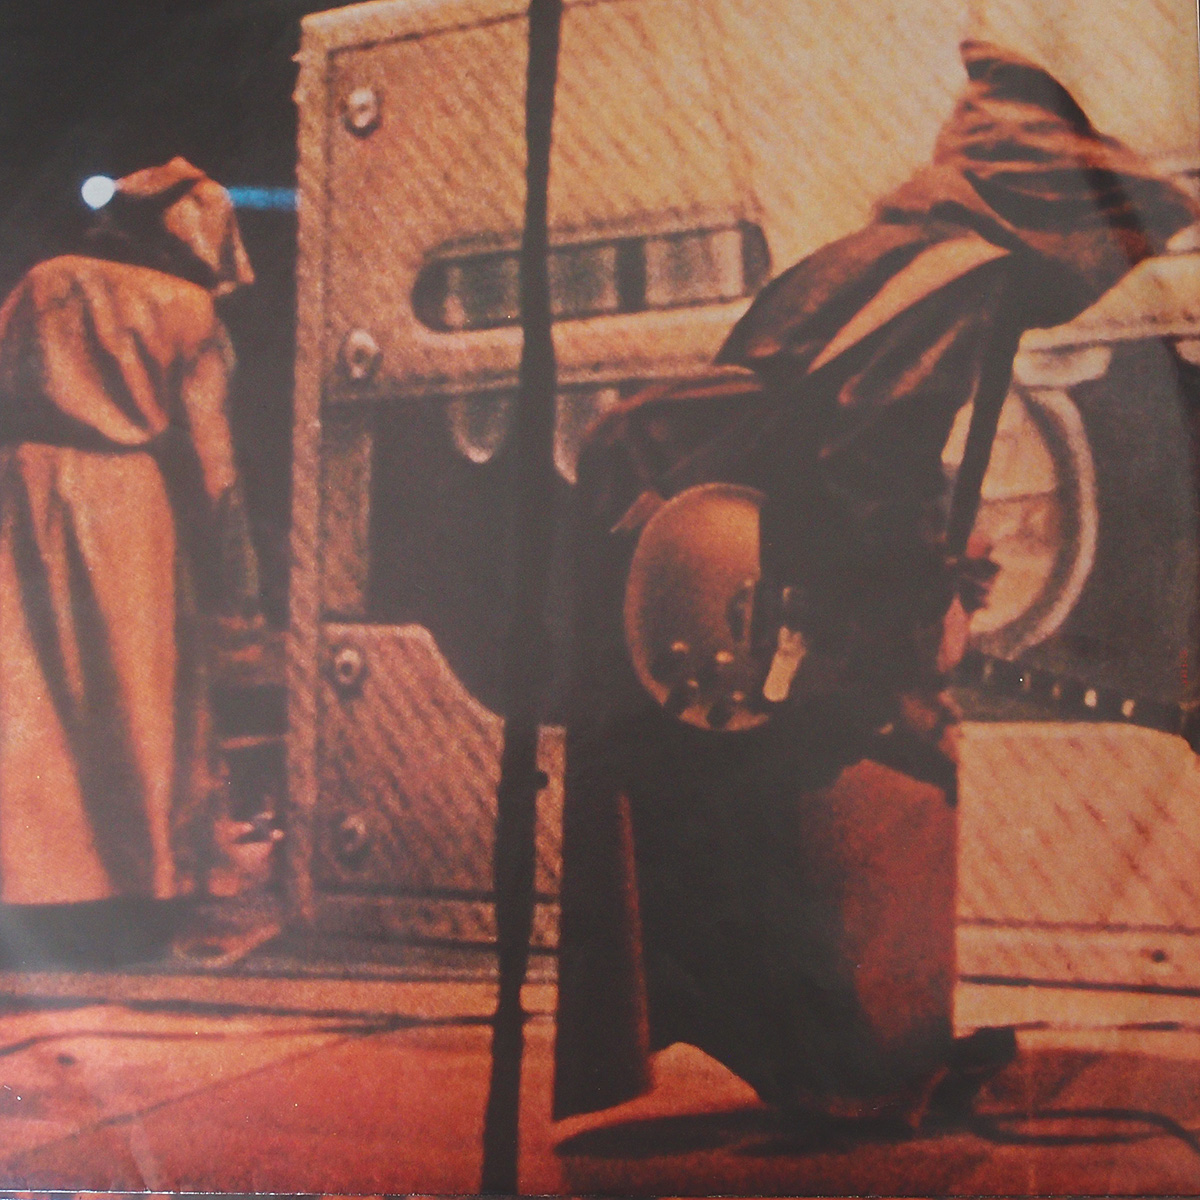 Neil Young Live Rust 1979